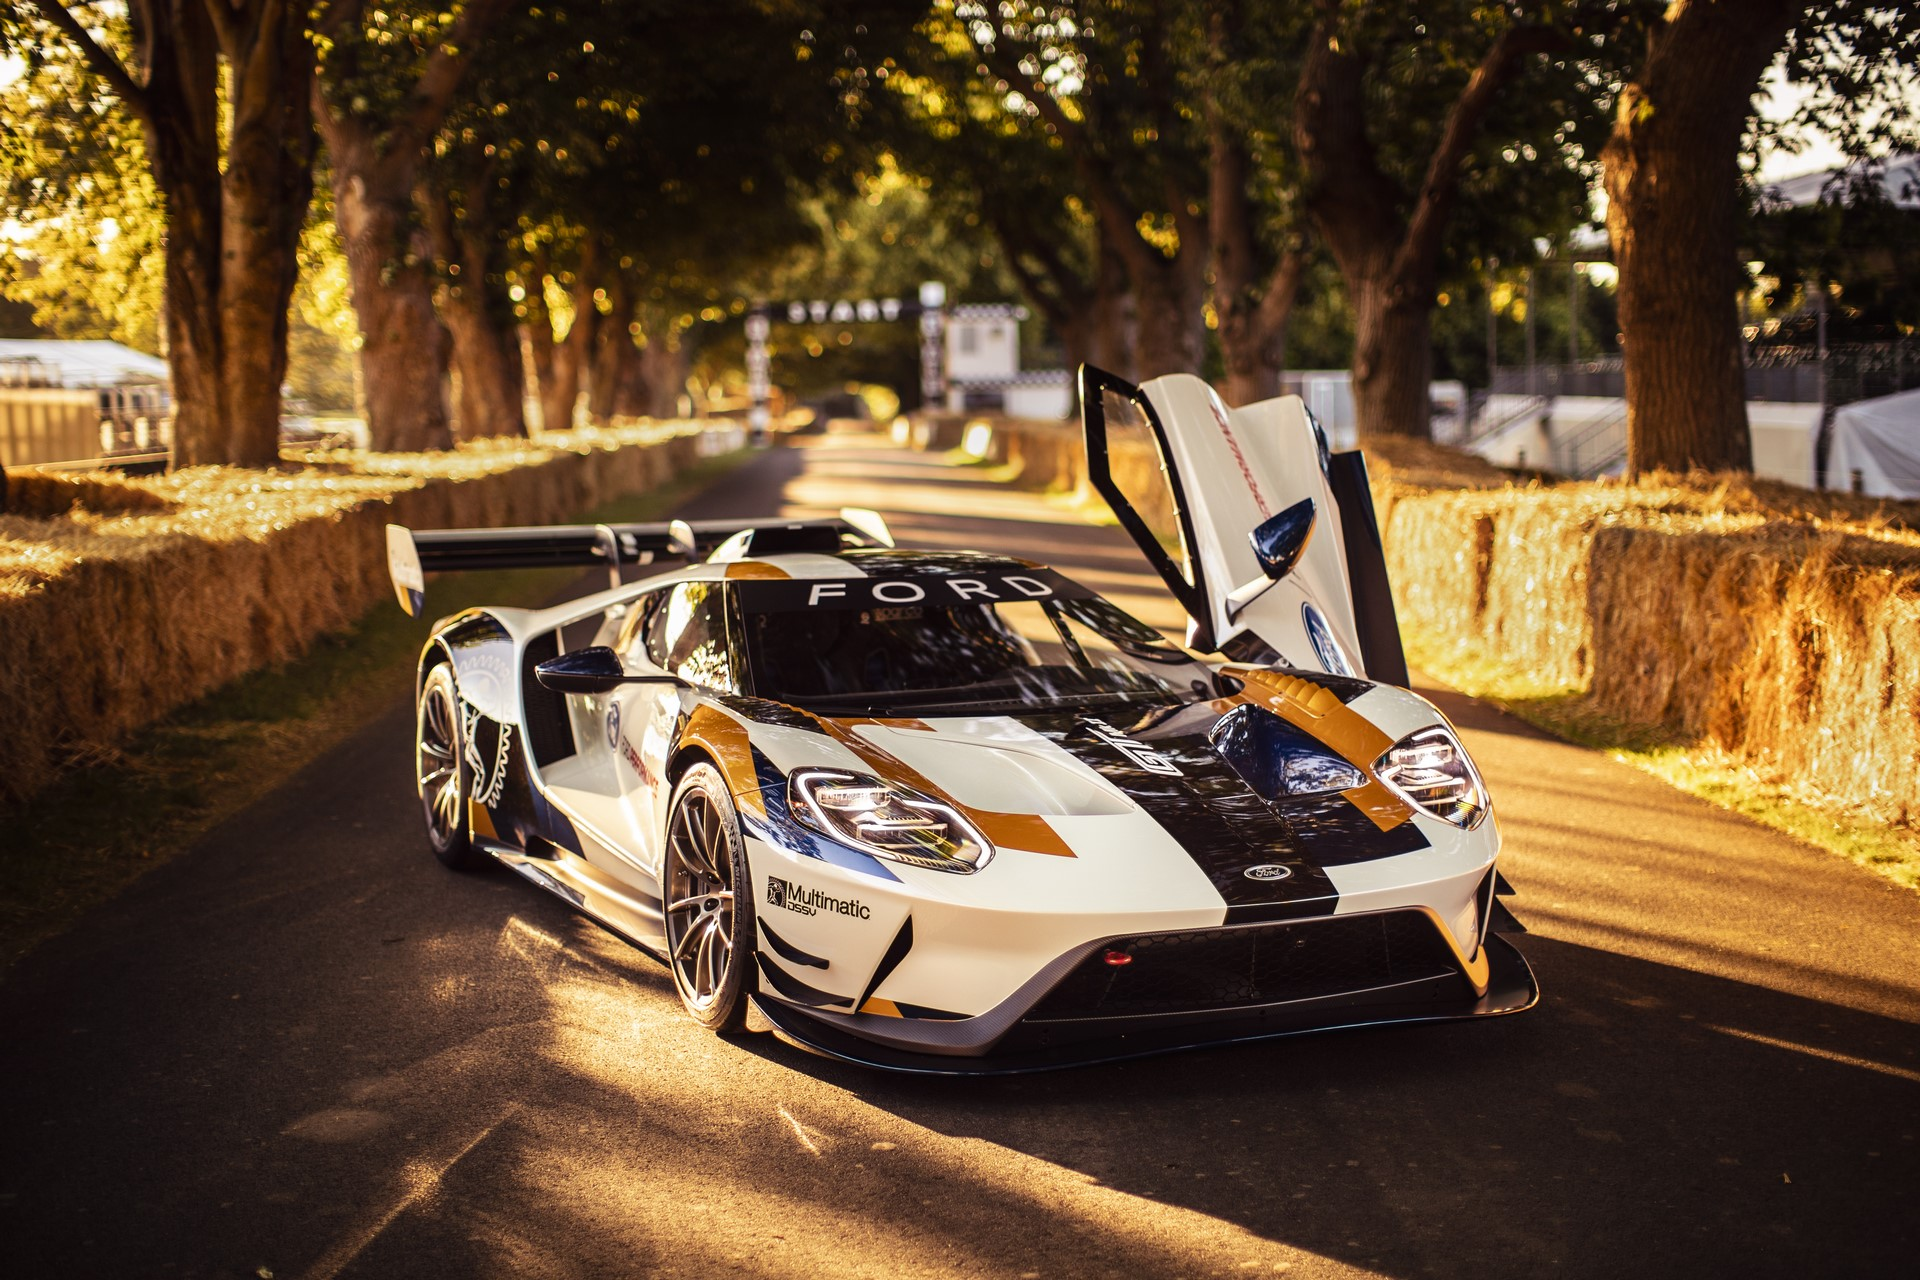 Limited-Edition, Track-Only Ford GT Mk II Unleashes the Next Level of Ford GT Supercar Performance